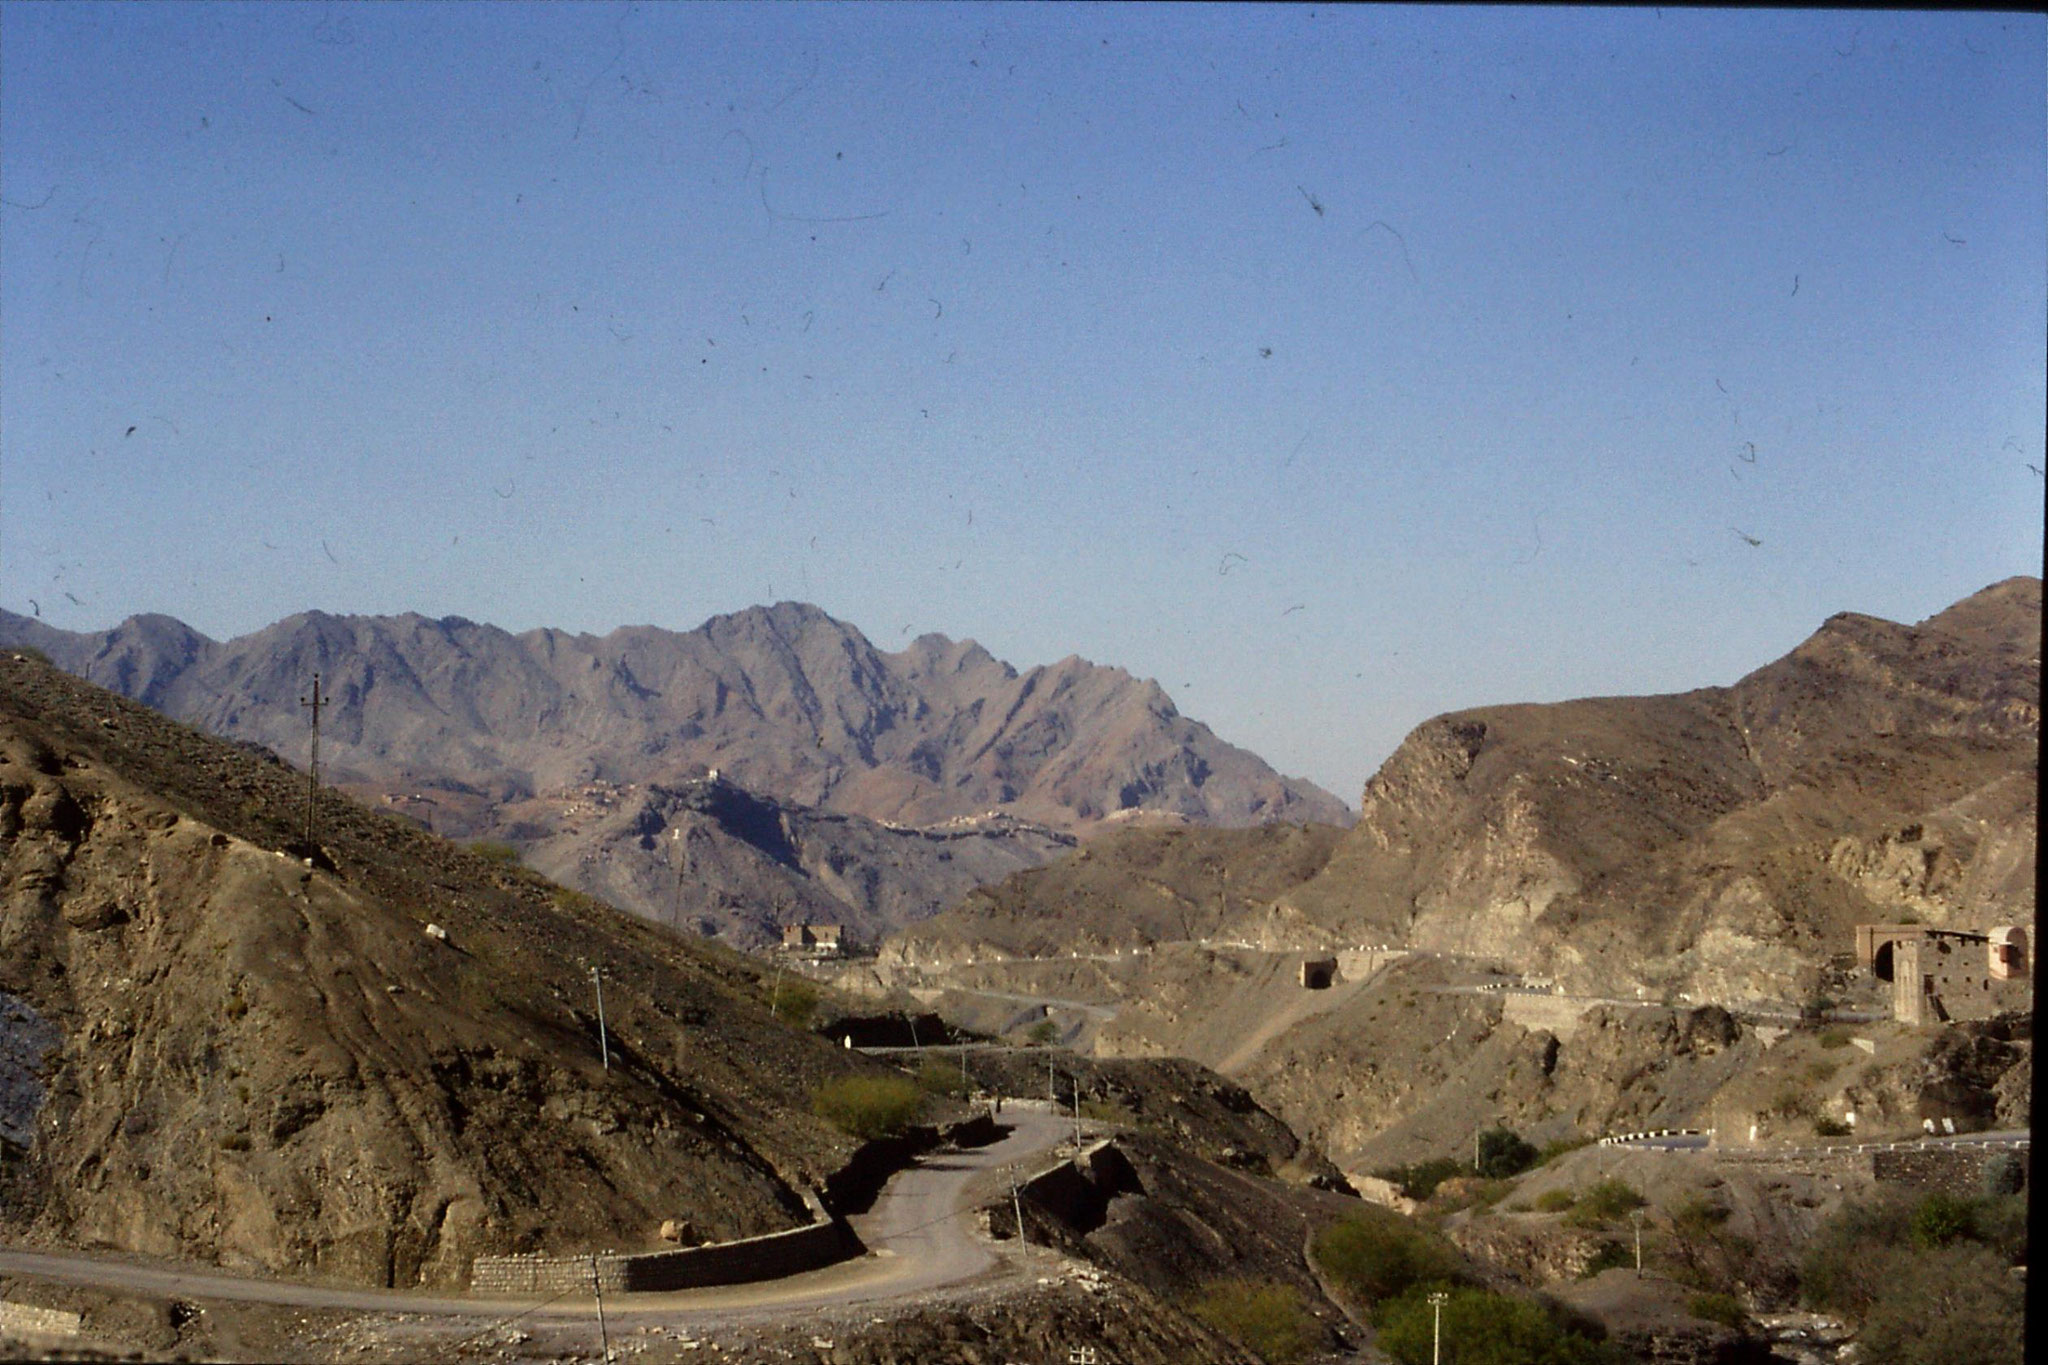 6/11/1989: 19: Khyber Pass view down to Torkum and Afghanistan